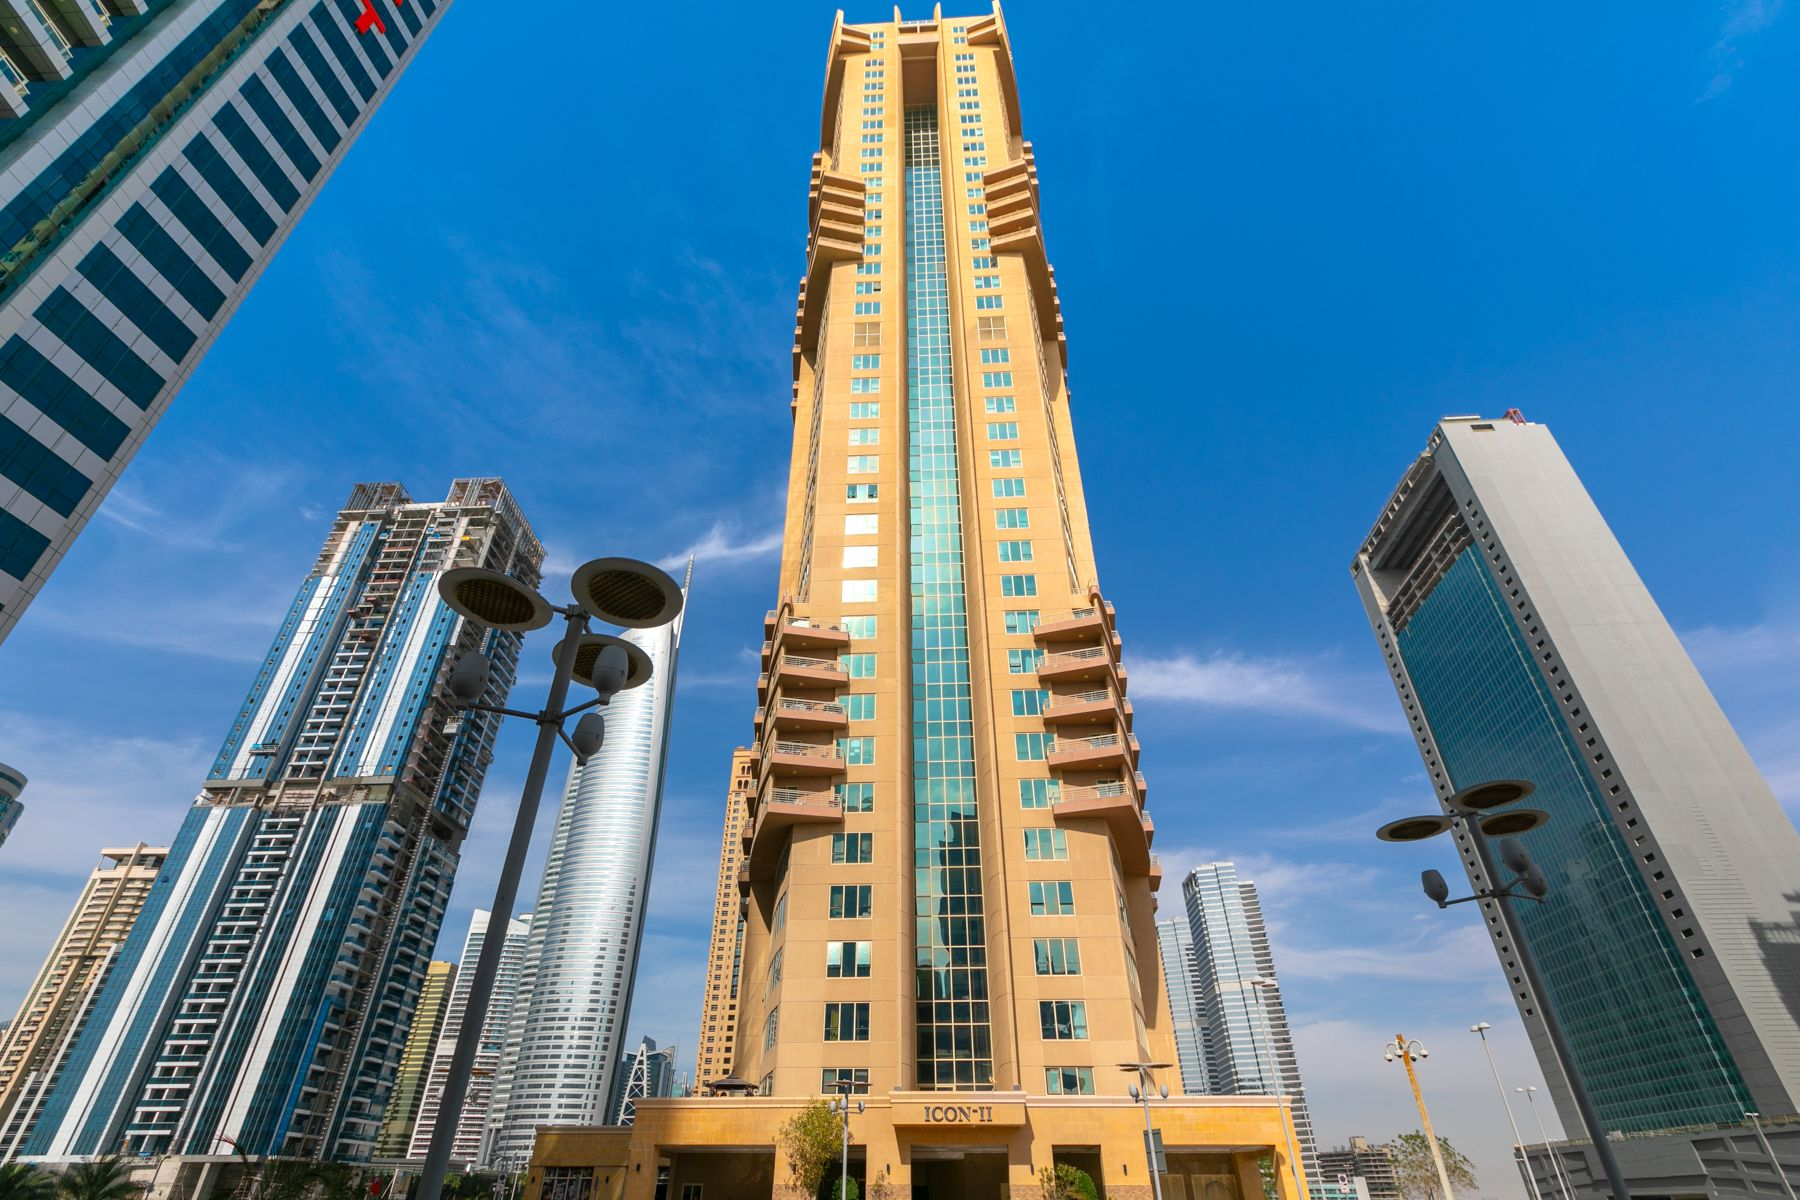 Studio for Rent in Icon Tower 2, Jumeirah Lake Towers